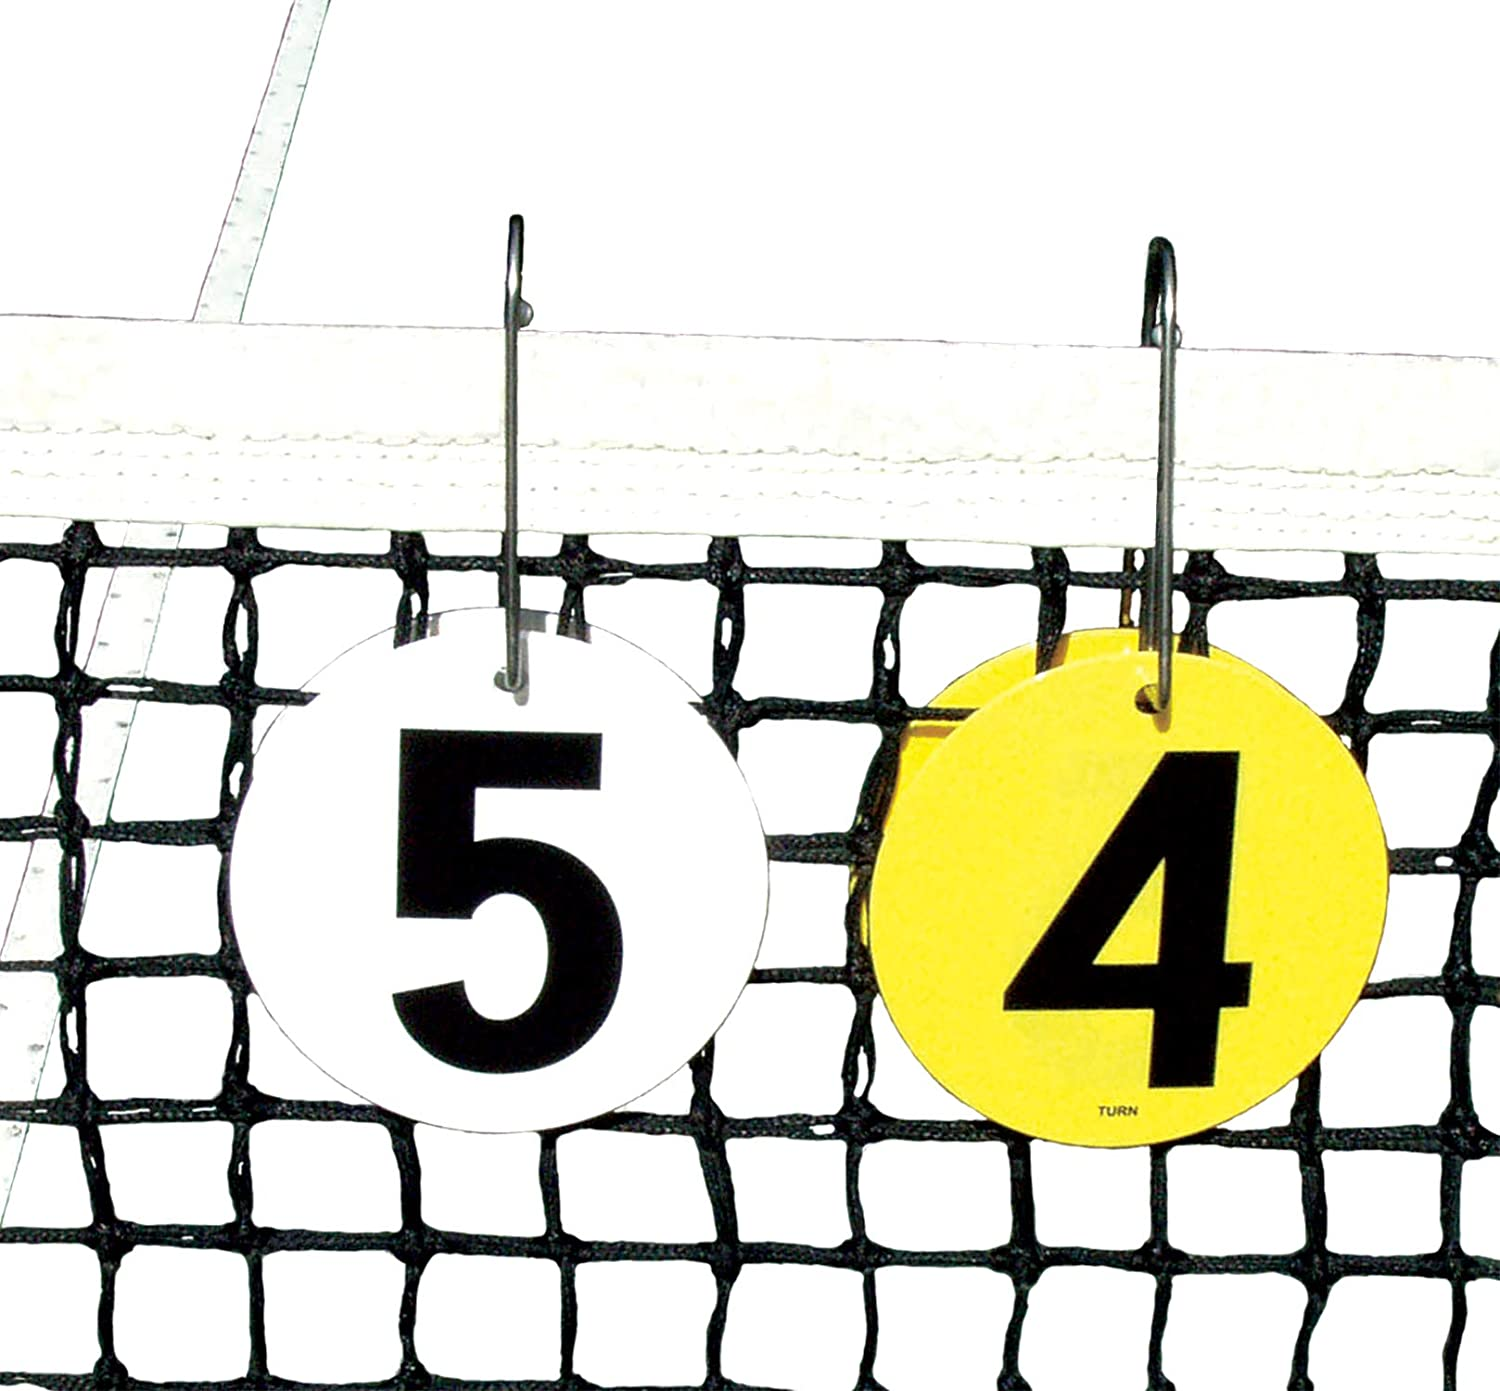 Tourna Portable Tennis Score Keeper, Fits Over Net : Sports & Outdoors